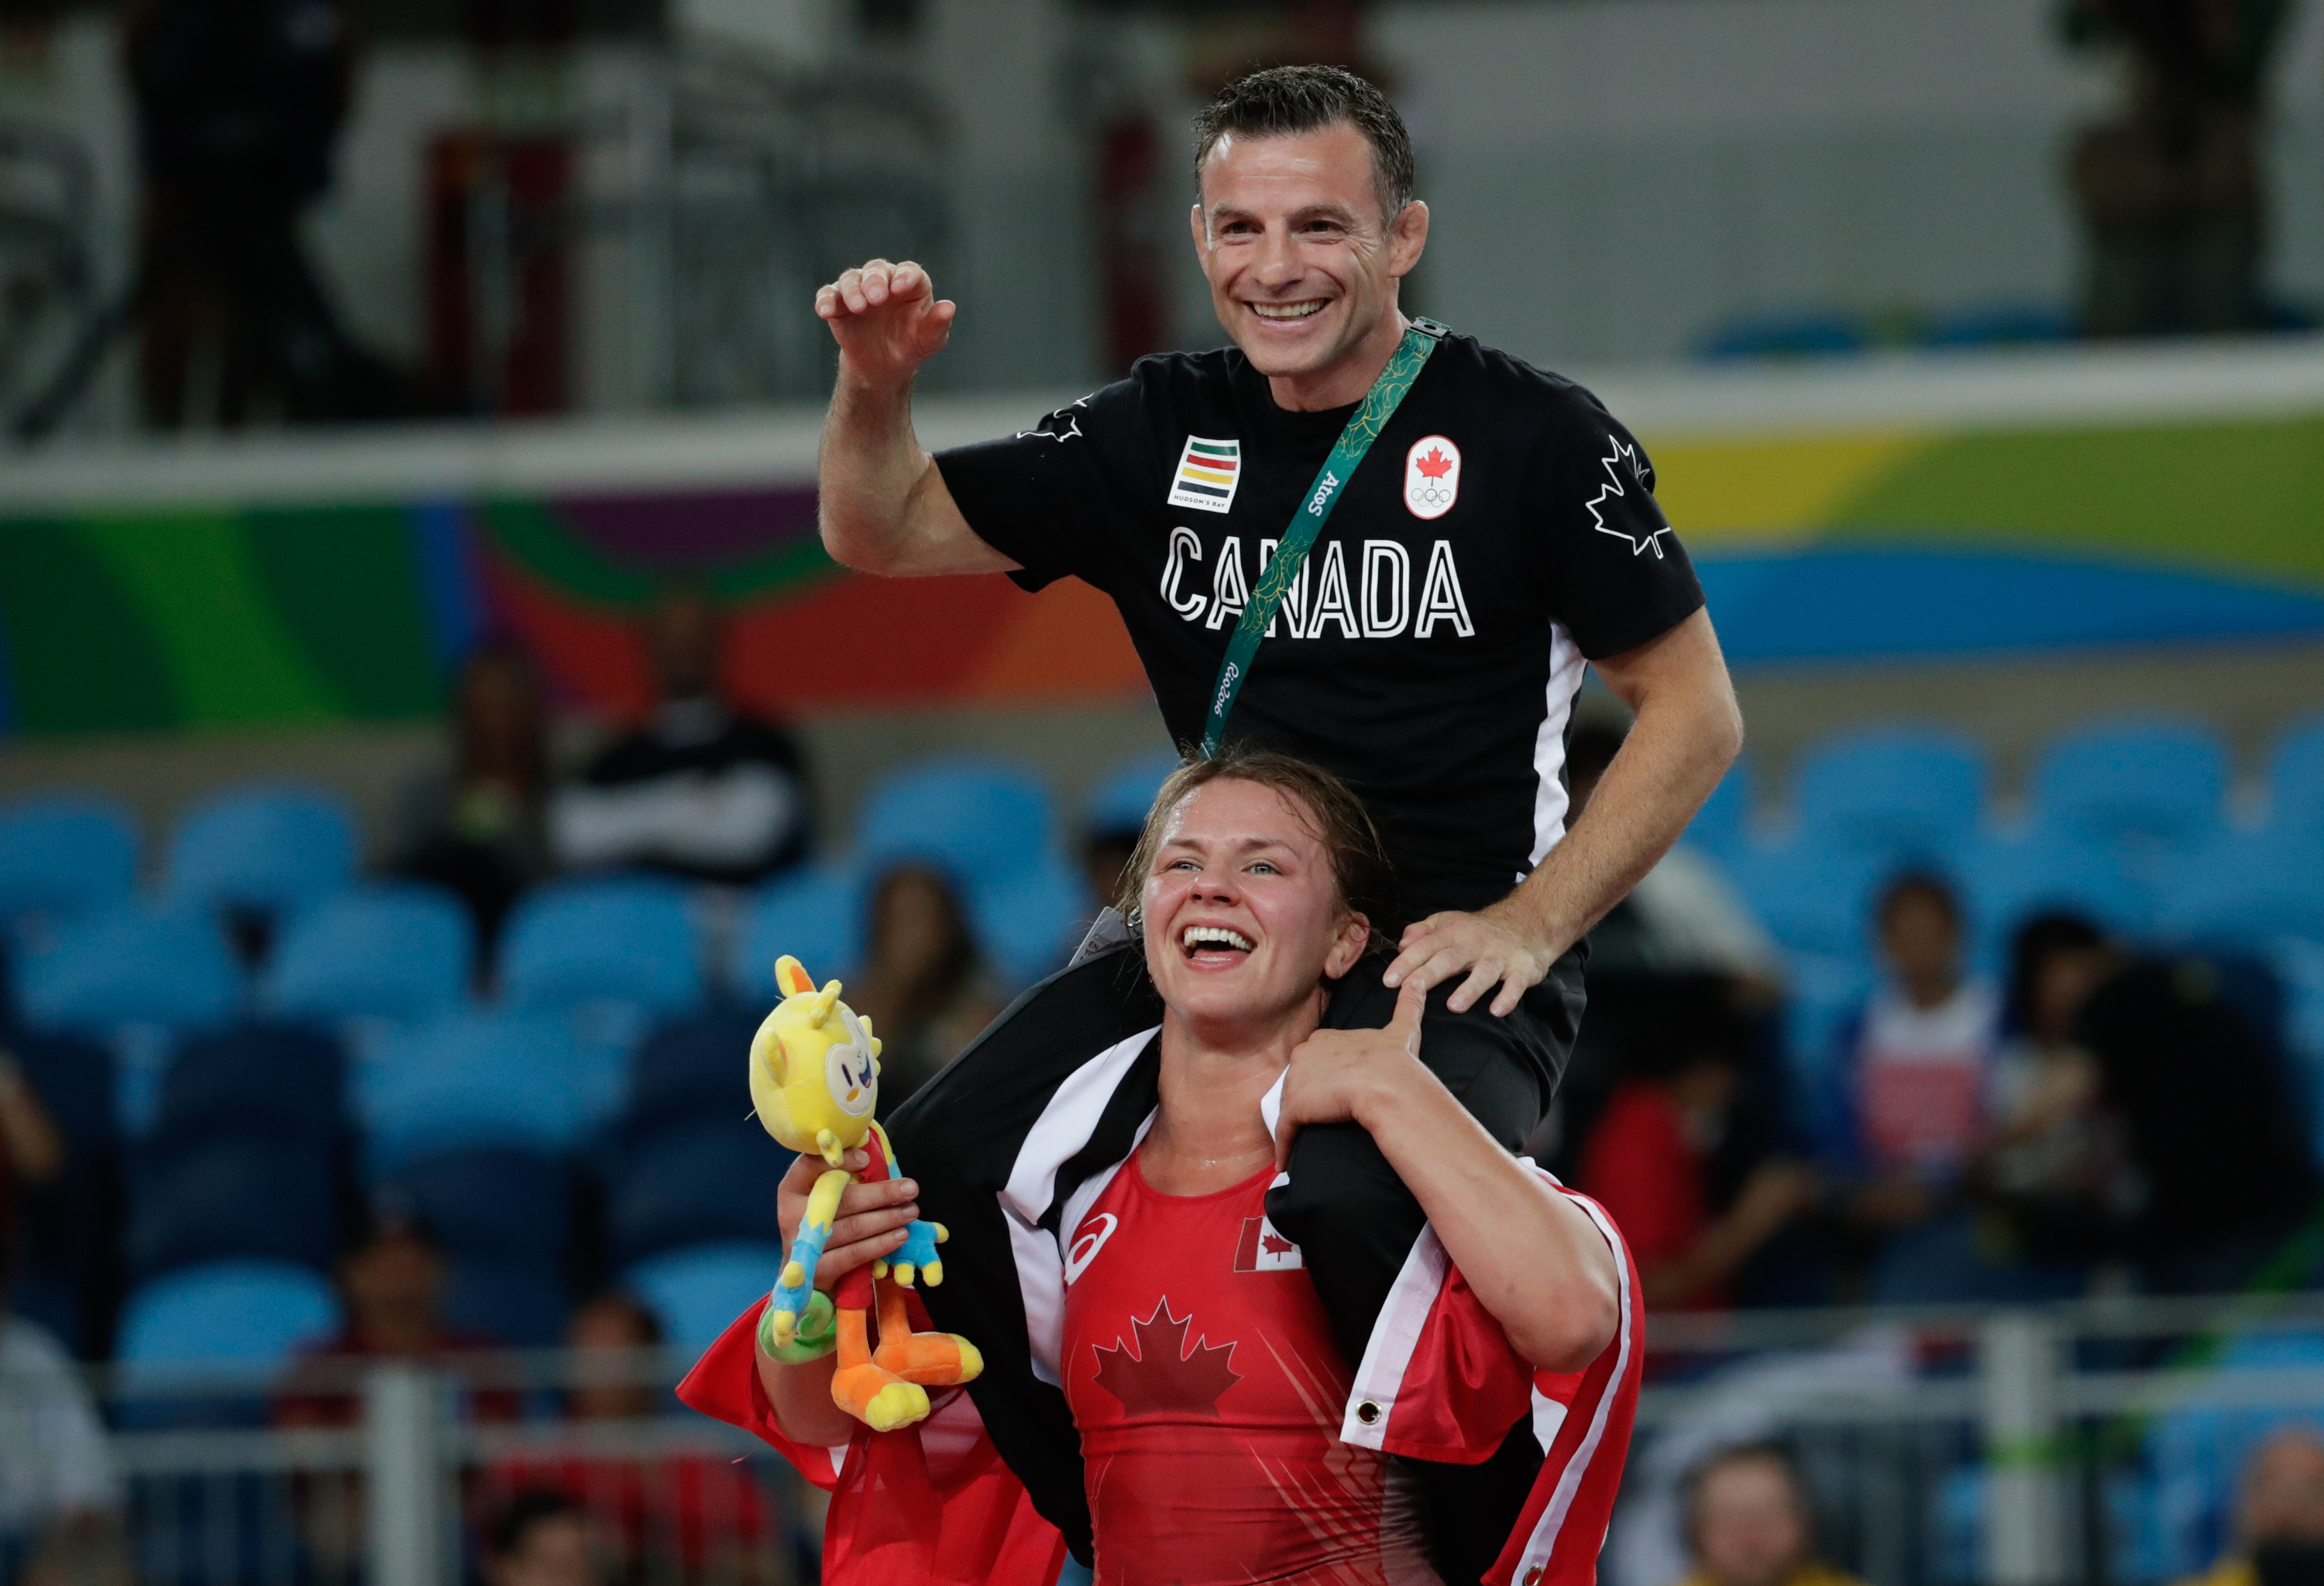 Erica Wiebe carries her coach after winning 75kg wrestling gold at Rio 2016 (COC/David Jackson)